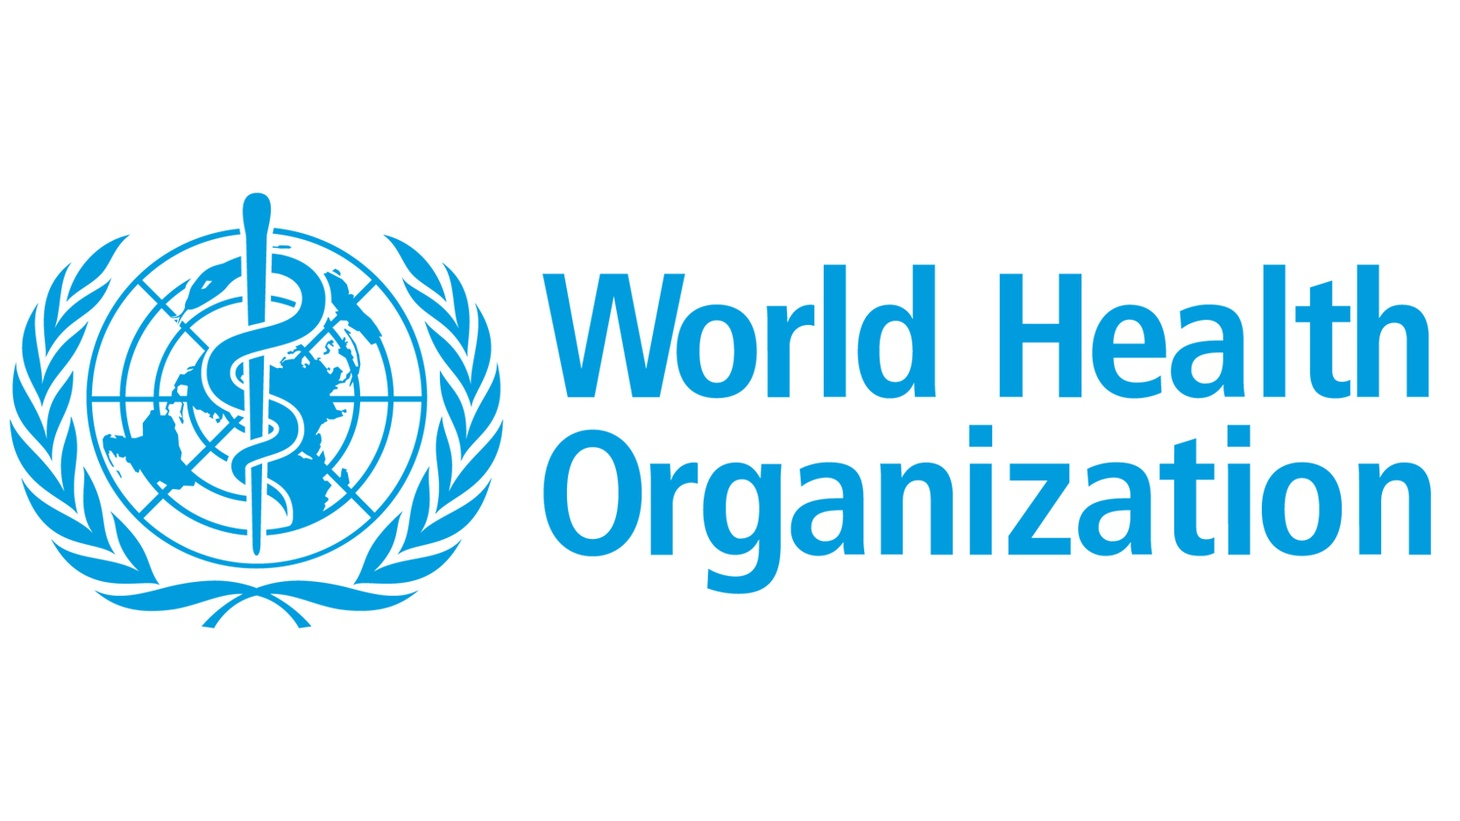 President Donald Trump is threatening to withdraw the U.S. from the World Health Organization — unless the international body makes improvements in the next 30 days. It's unclear what changes would satisfy Trump.